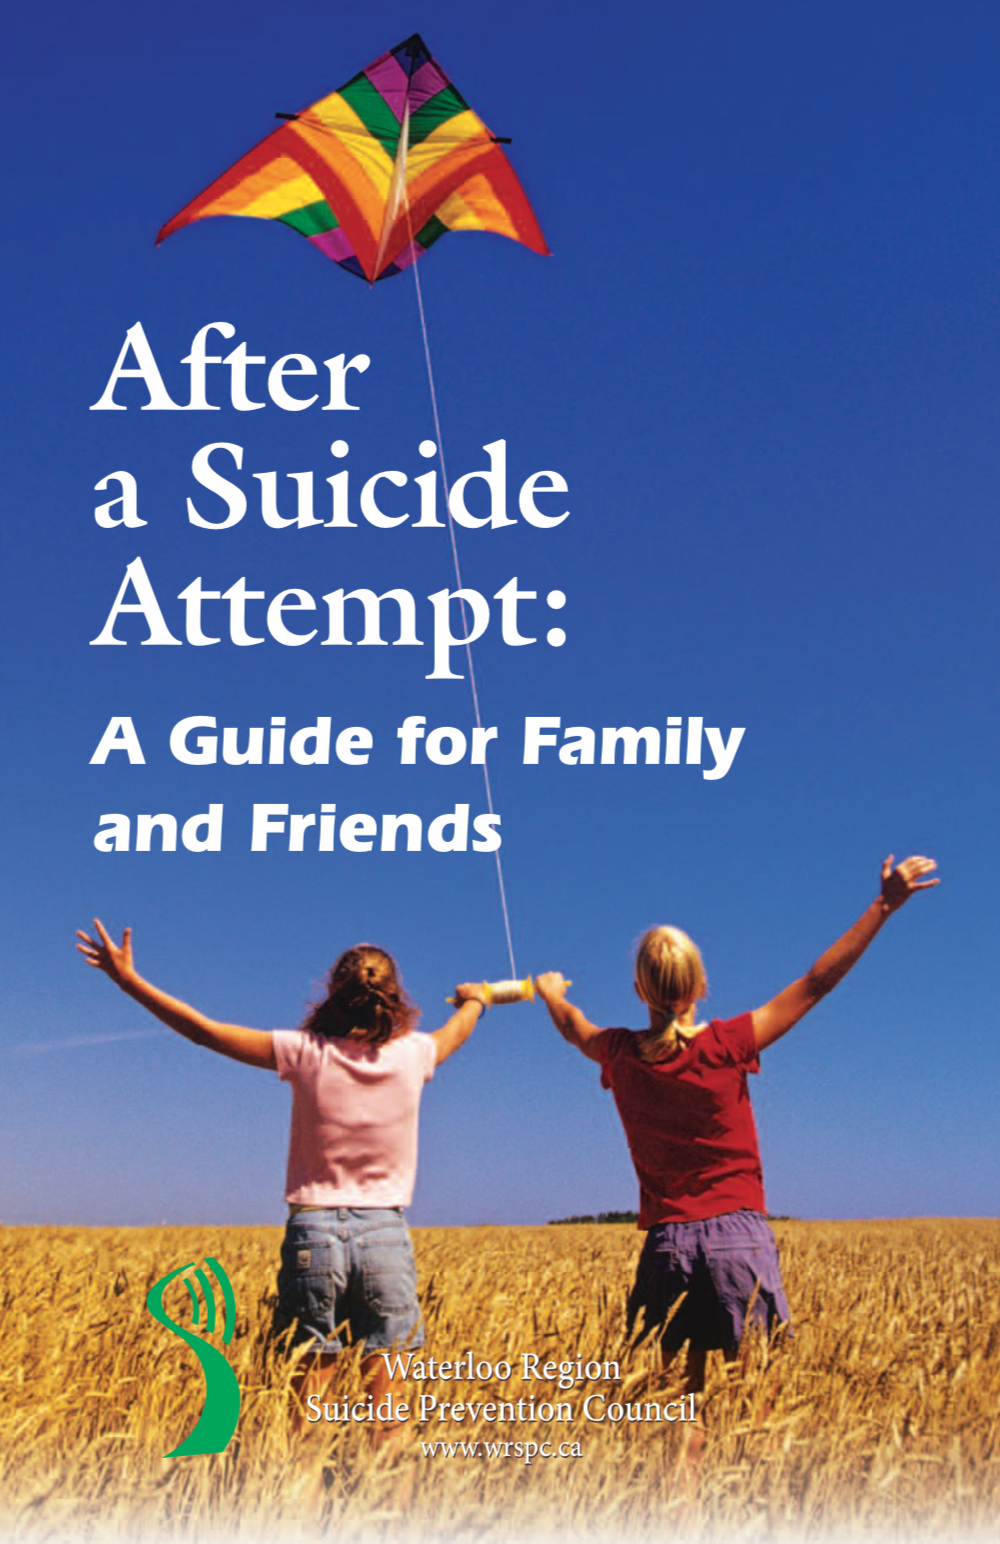 After a Suicide Attempt: A Guide for Family and Friends (CAN) -   Download